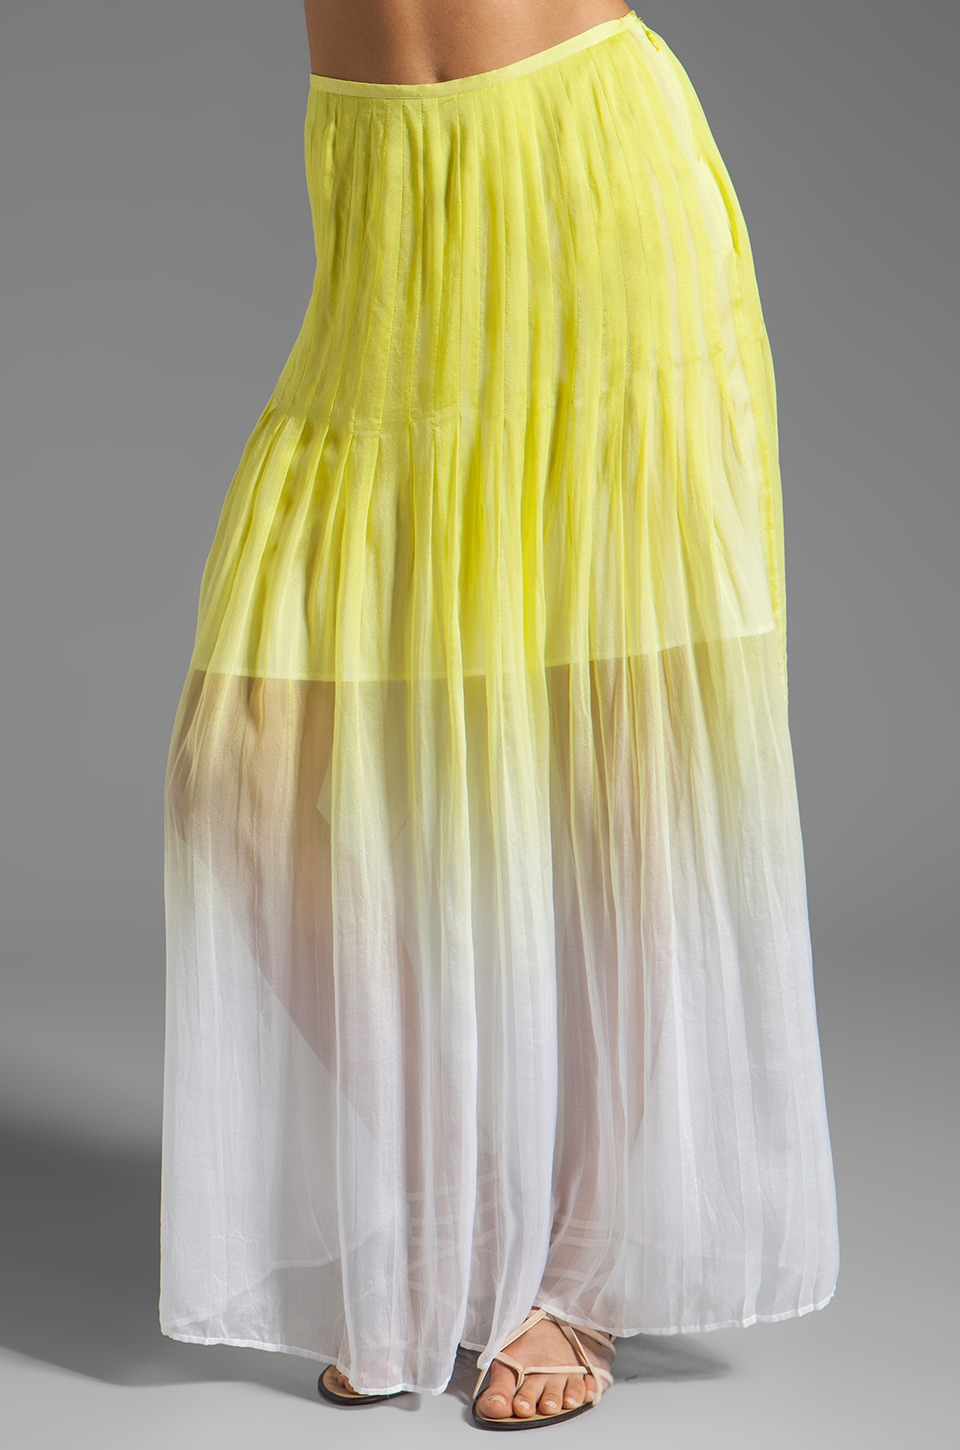 Catherine Malandrino Pleated Maxi Skirt in Absinthe